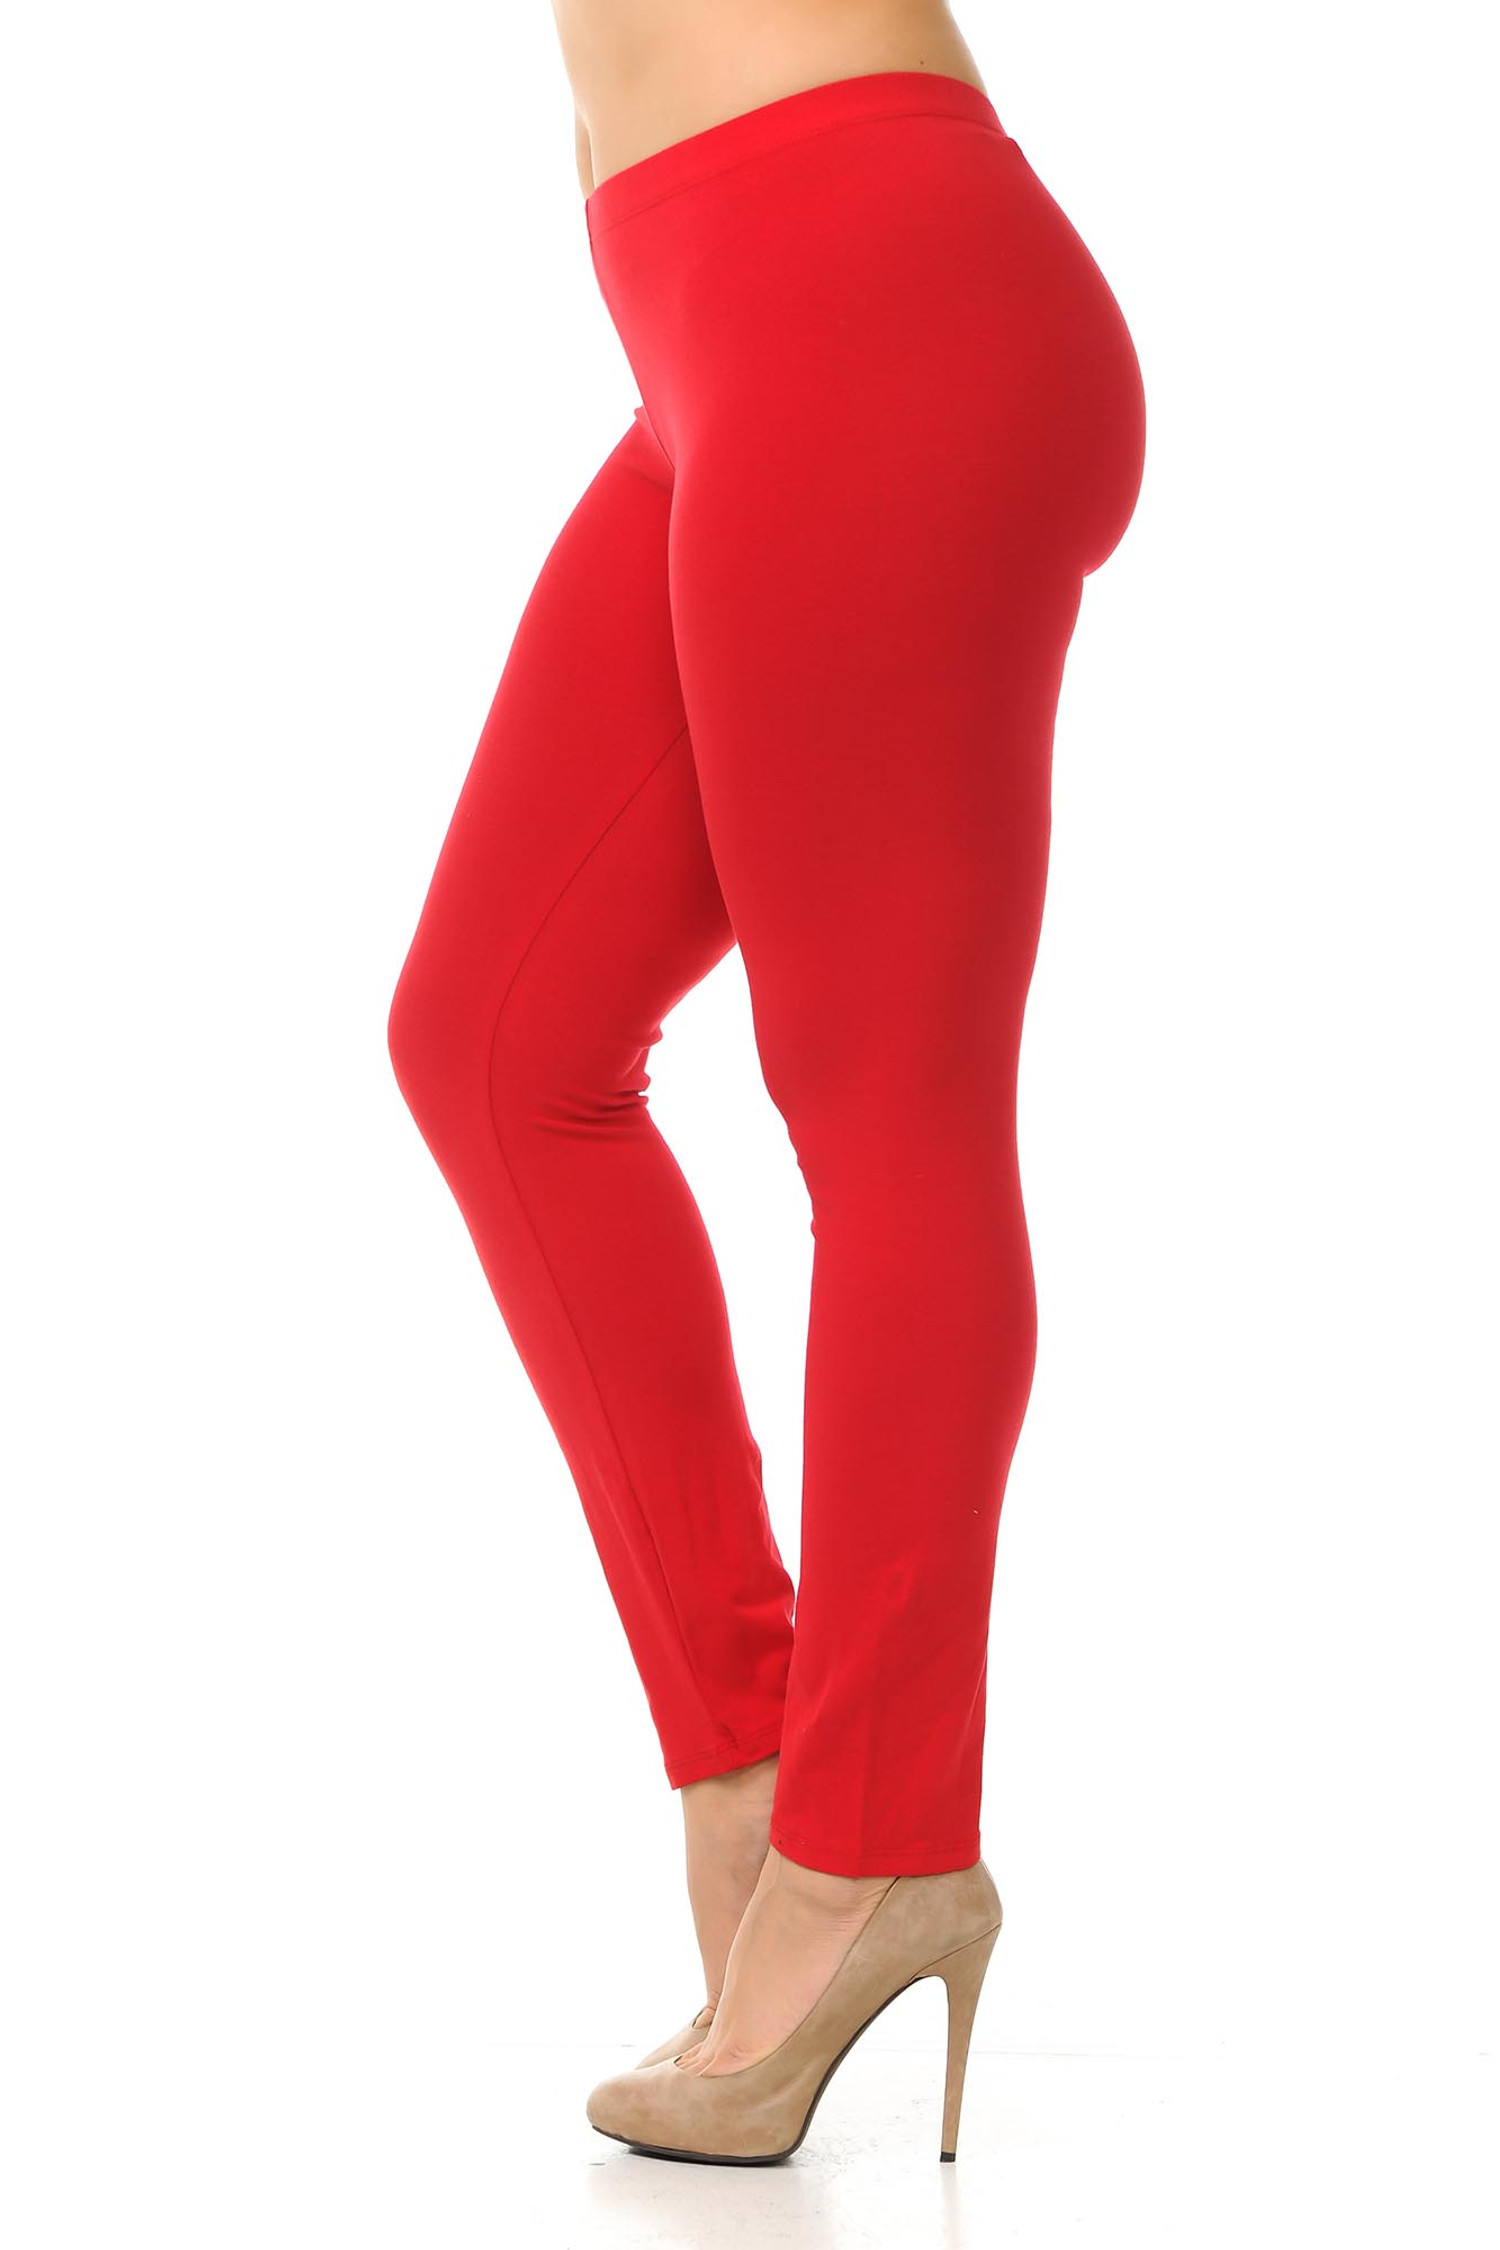 Left side view of  red plus size USA Cotton Full Length Leggings.